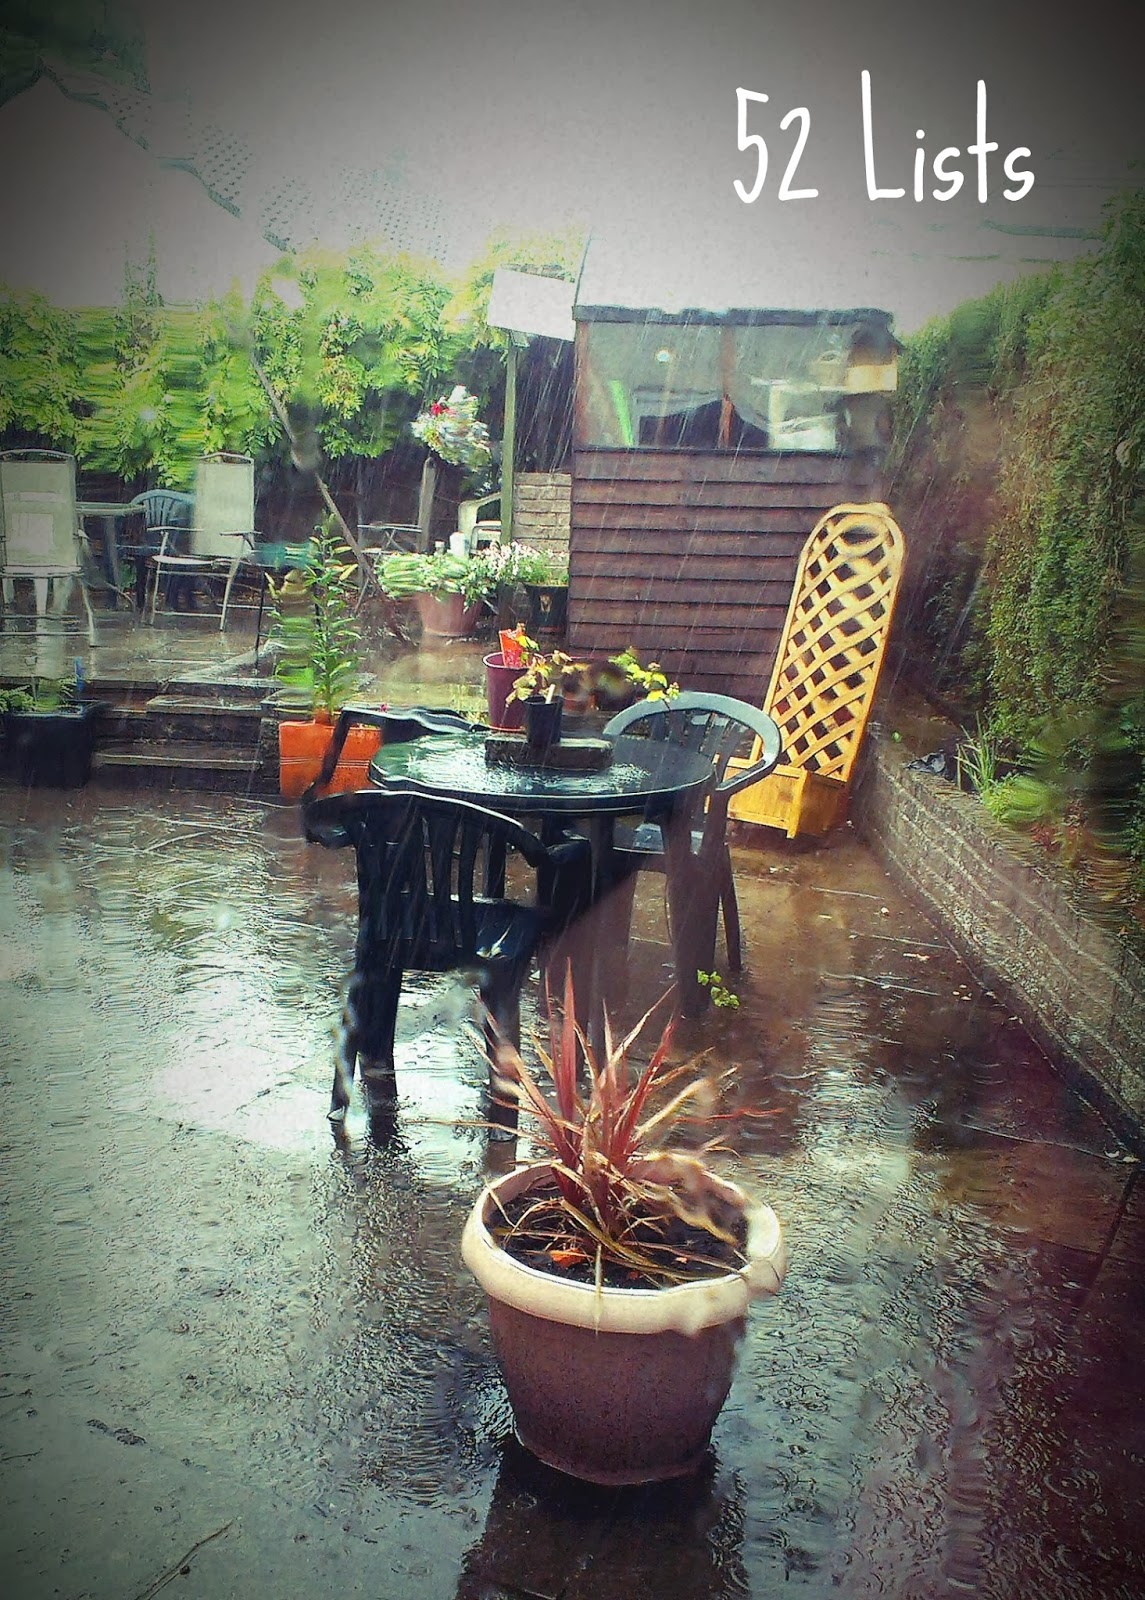 Garden on a rainy day